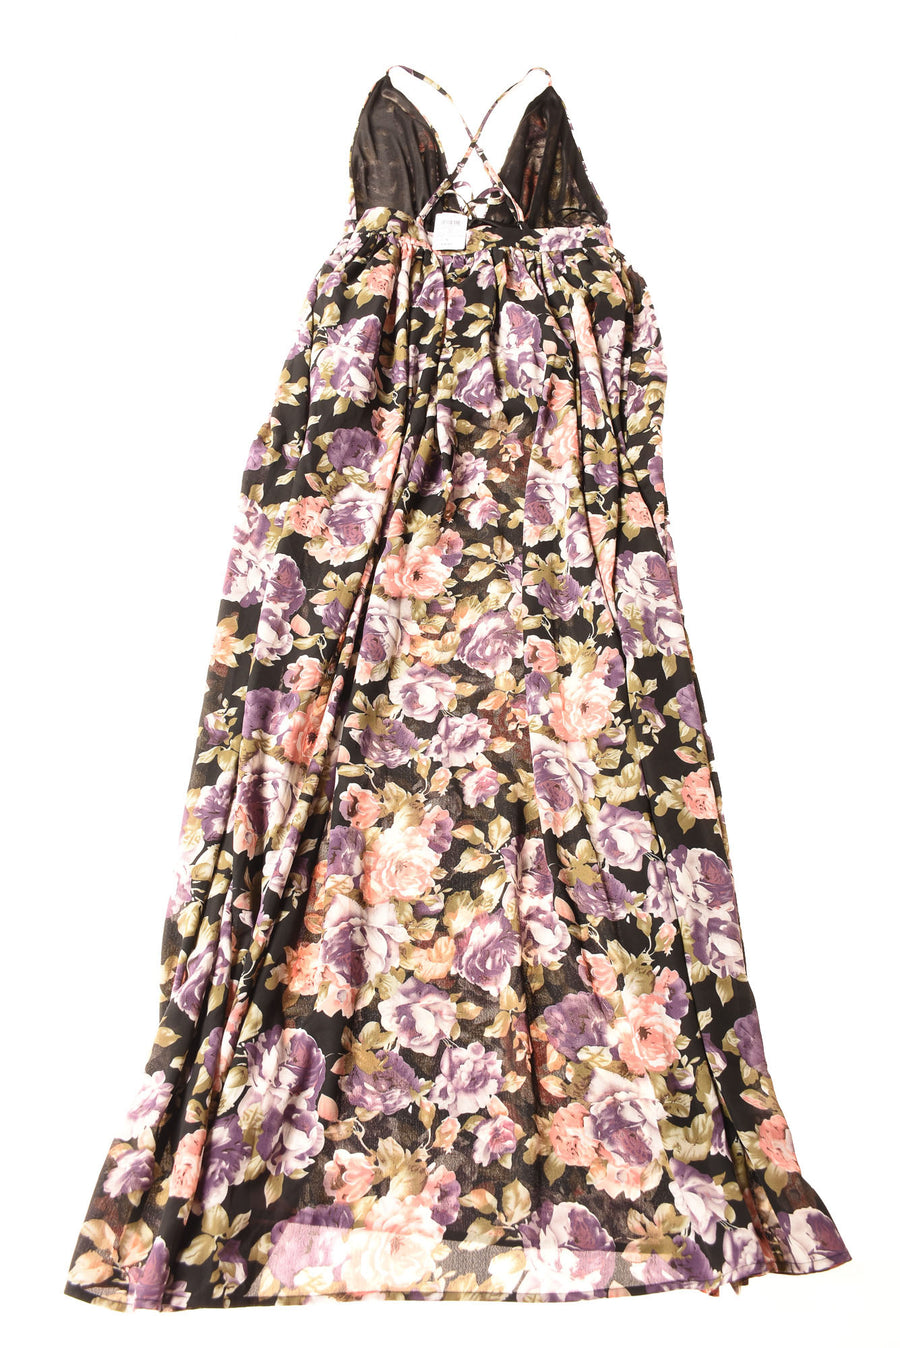 NEW Windsor Women's Dress Small Black / Floral